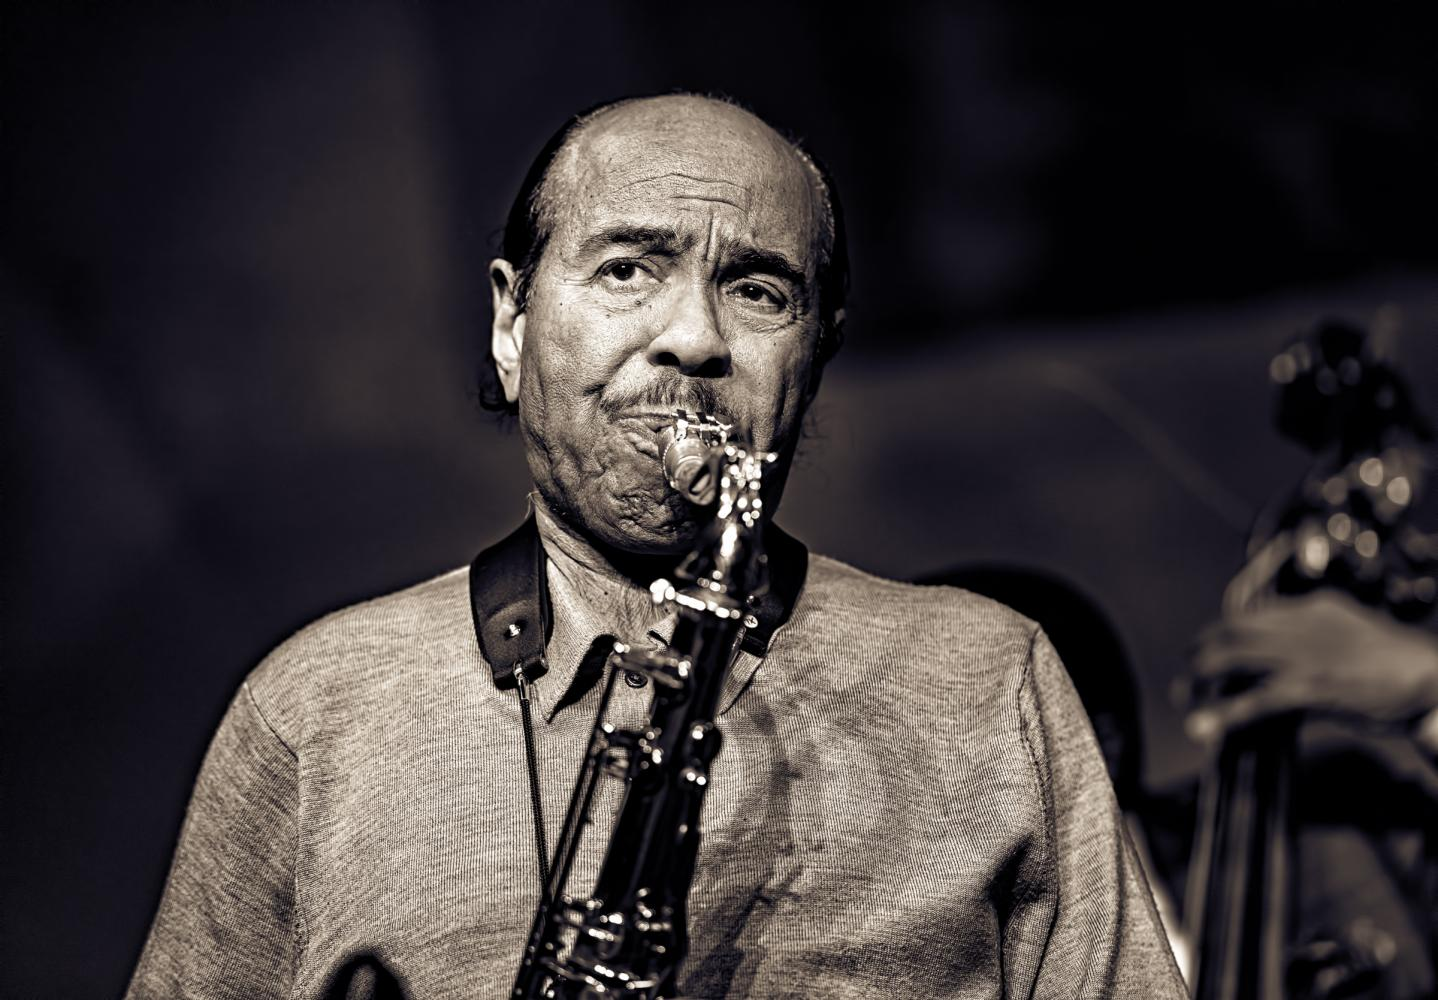 Benny Golson At The Jazz Legends For Disability Pride At The NYC Winter Jazzfest 2017